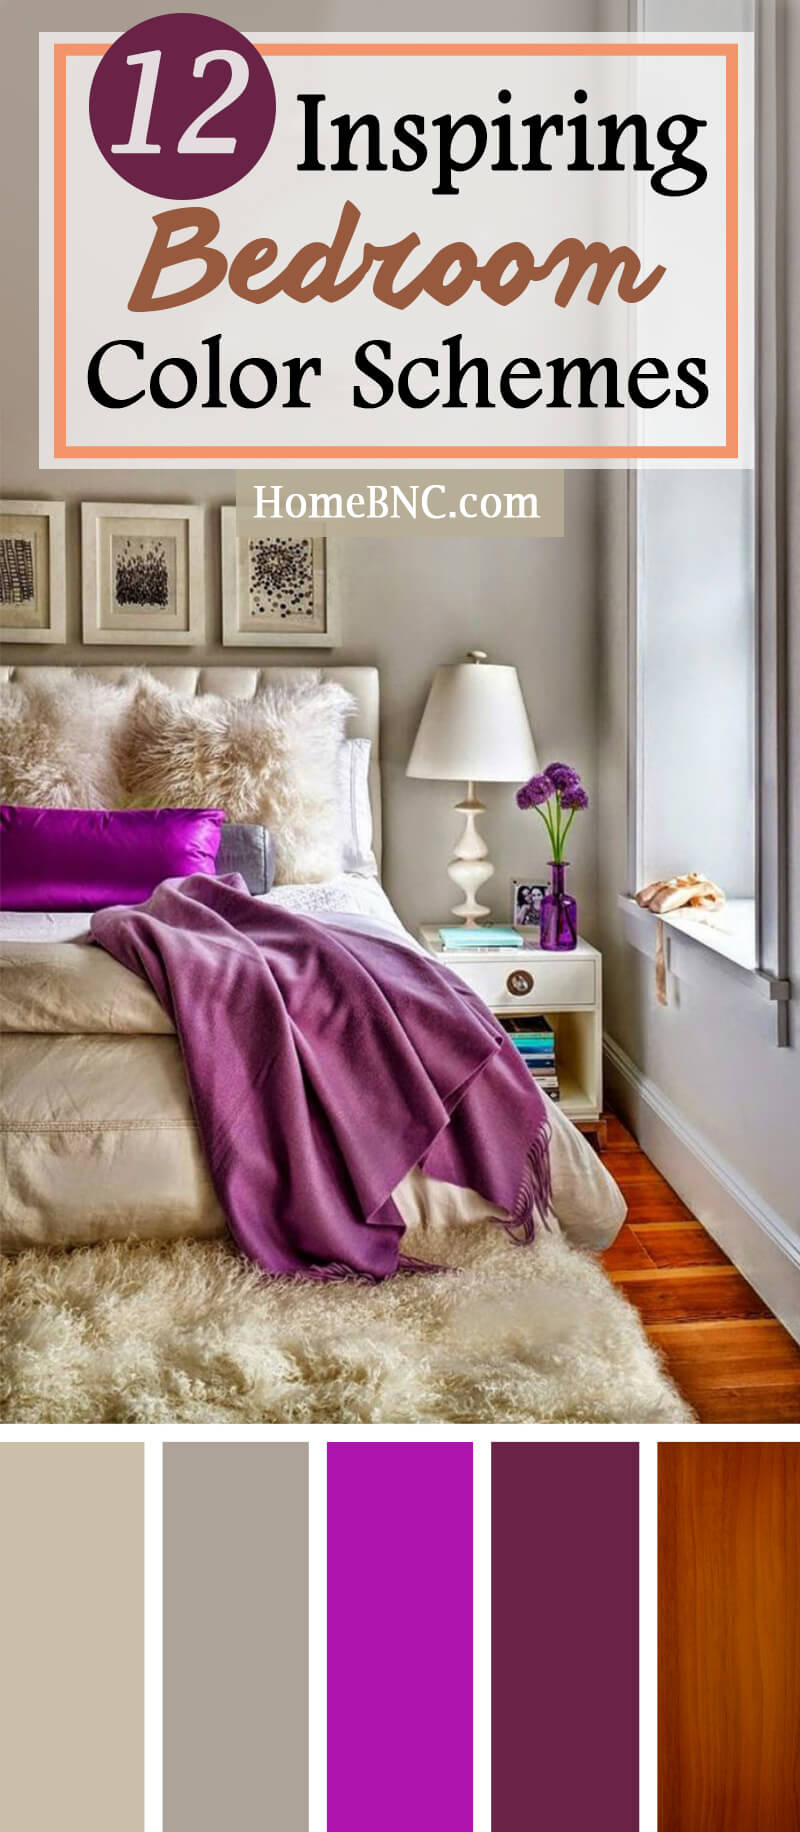 12 Inspiring Bedroom Color Scheme Ideas To Create A Sanctuary Straight Out Of Your Favorite Magazine